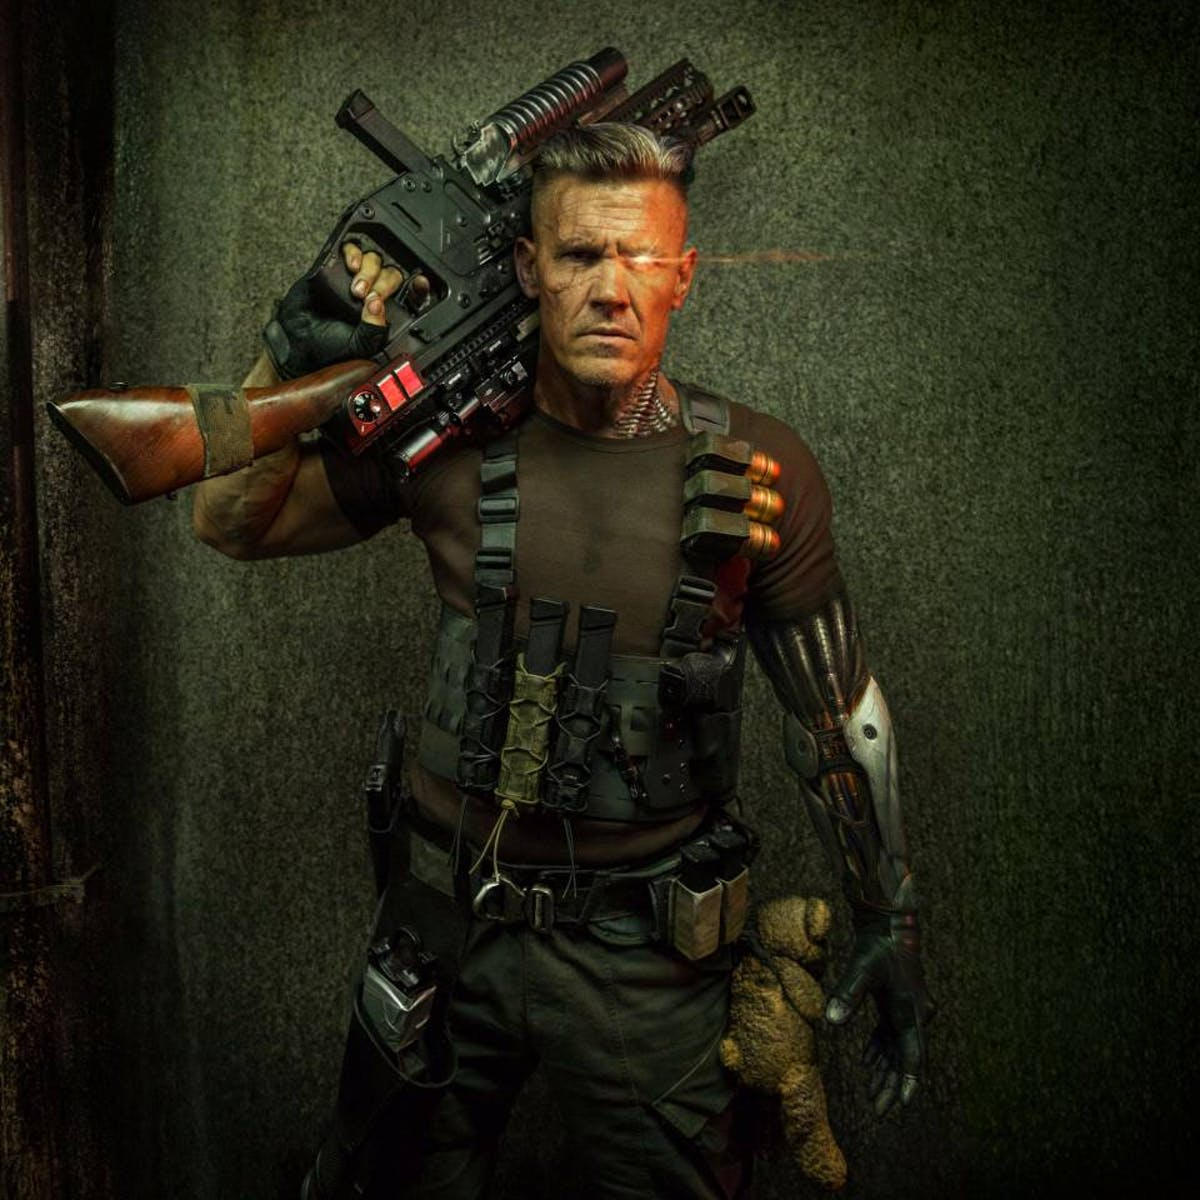 How Violent is 'Deadpool 2'? Josh Brolin Knows All Too Well